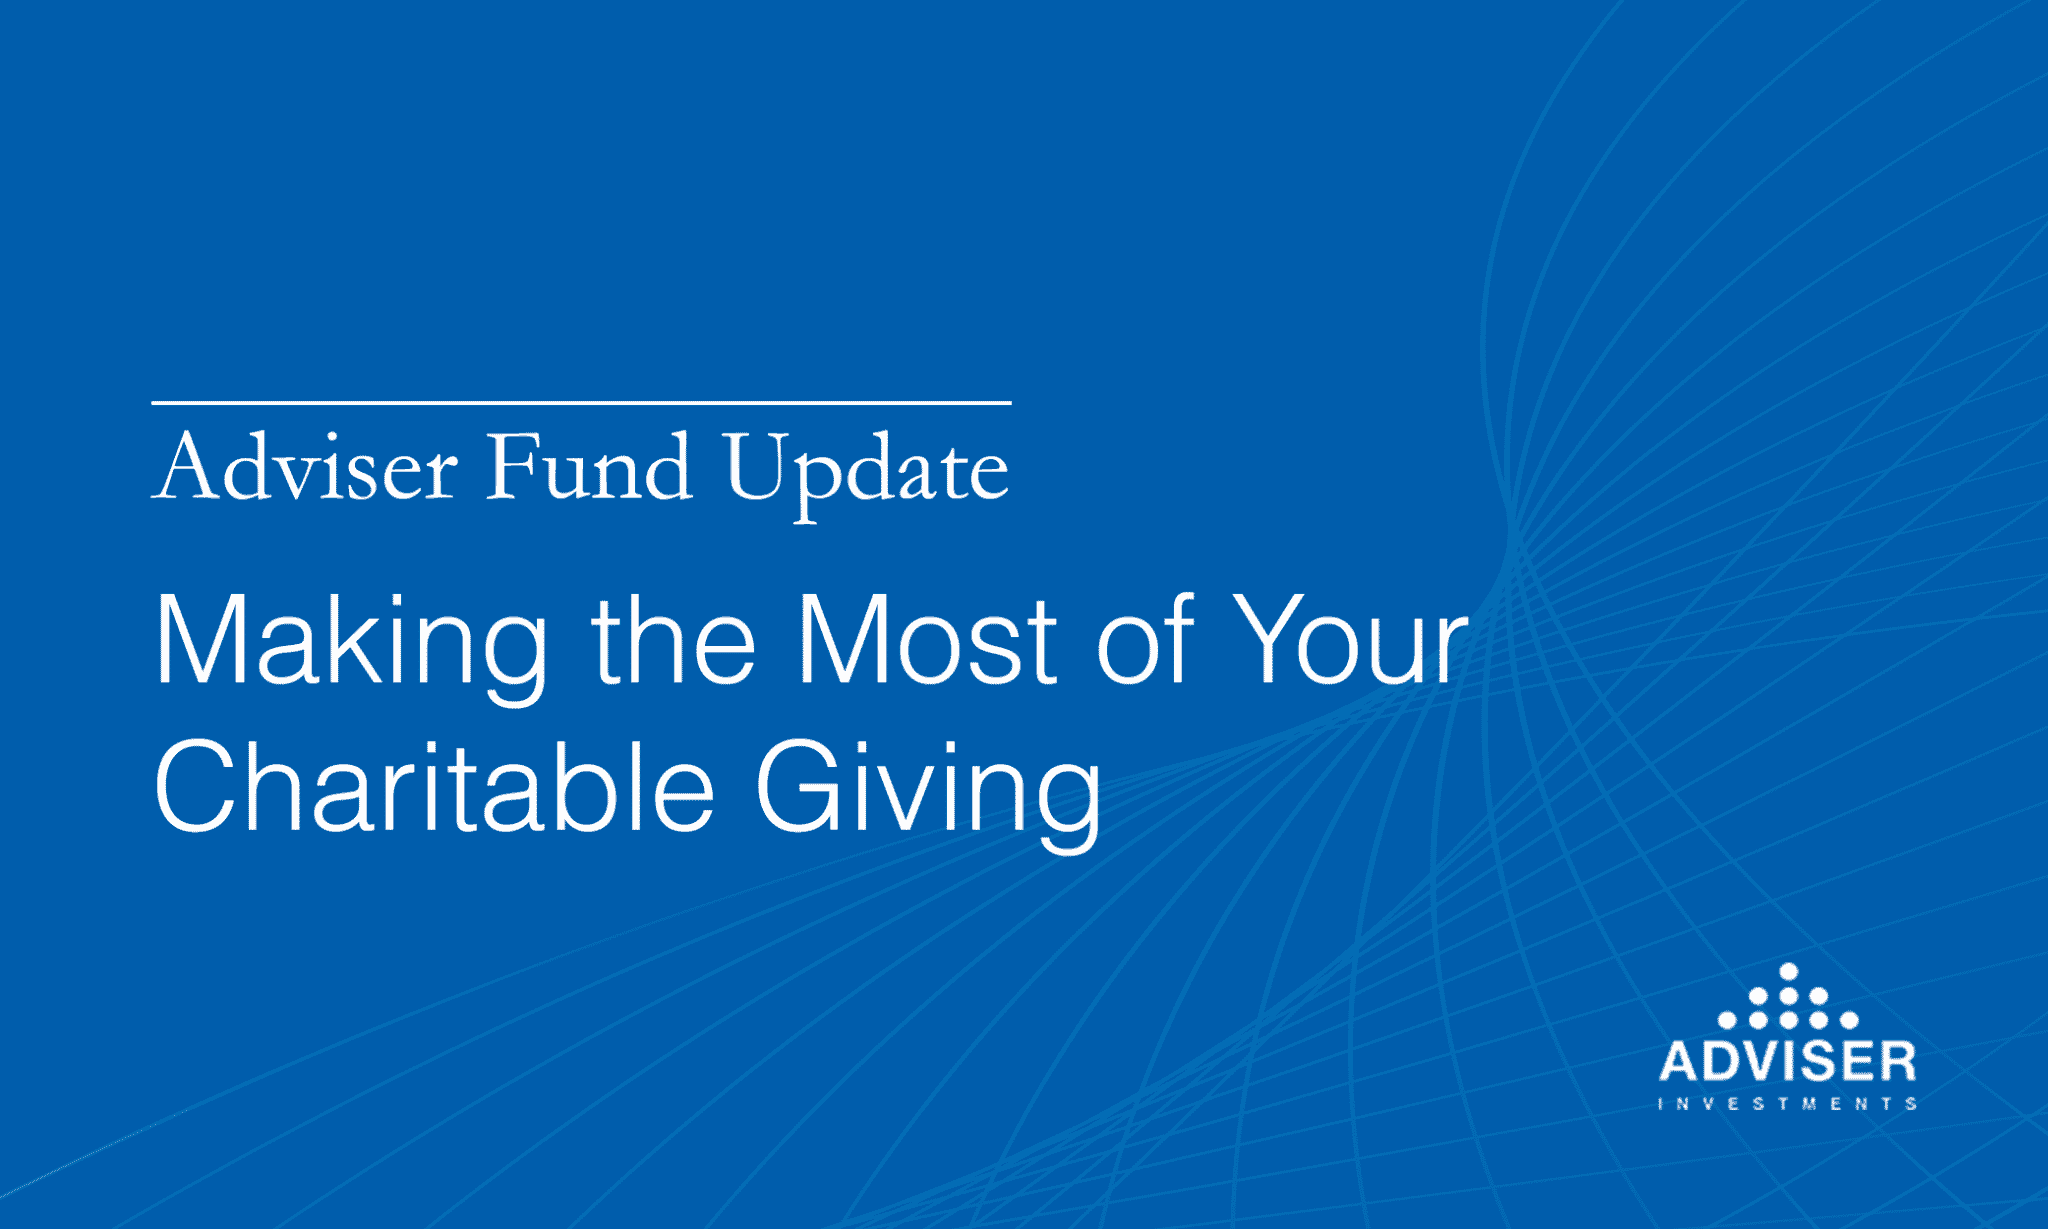 Charitable giving and tax strategy go hand-in-hand. This special report tells you how to make the most of your charitable giving.